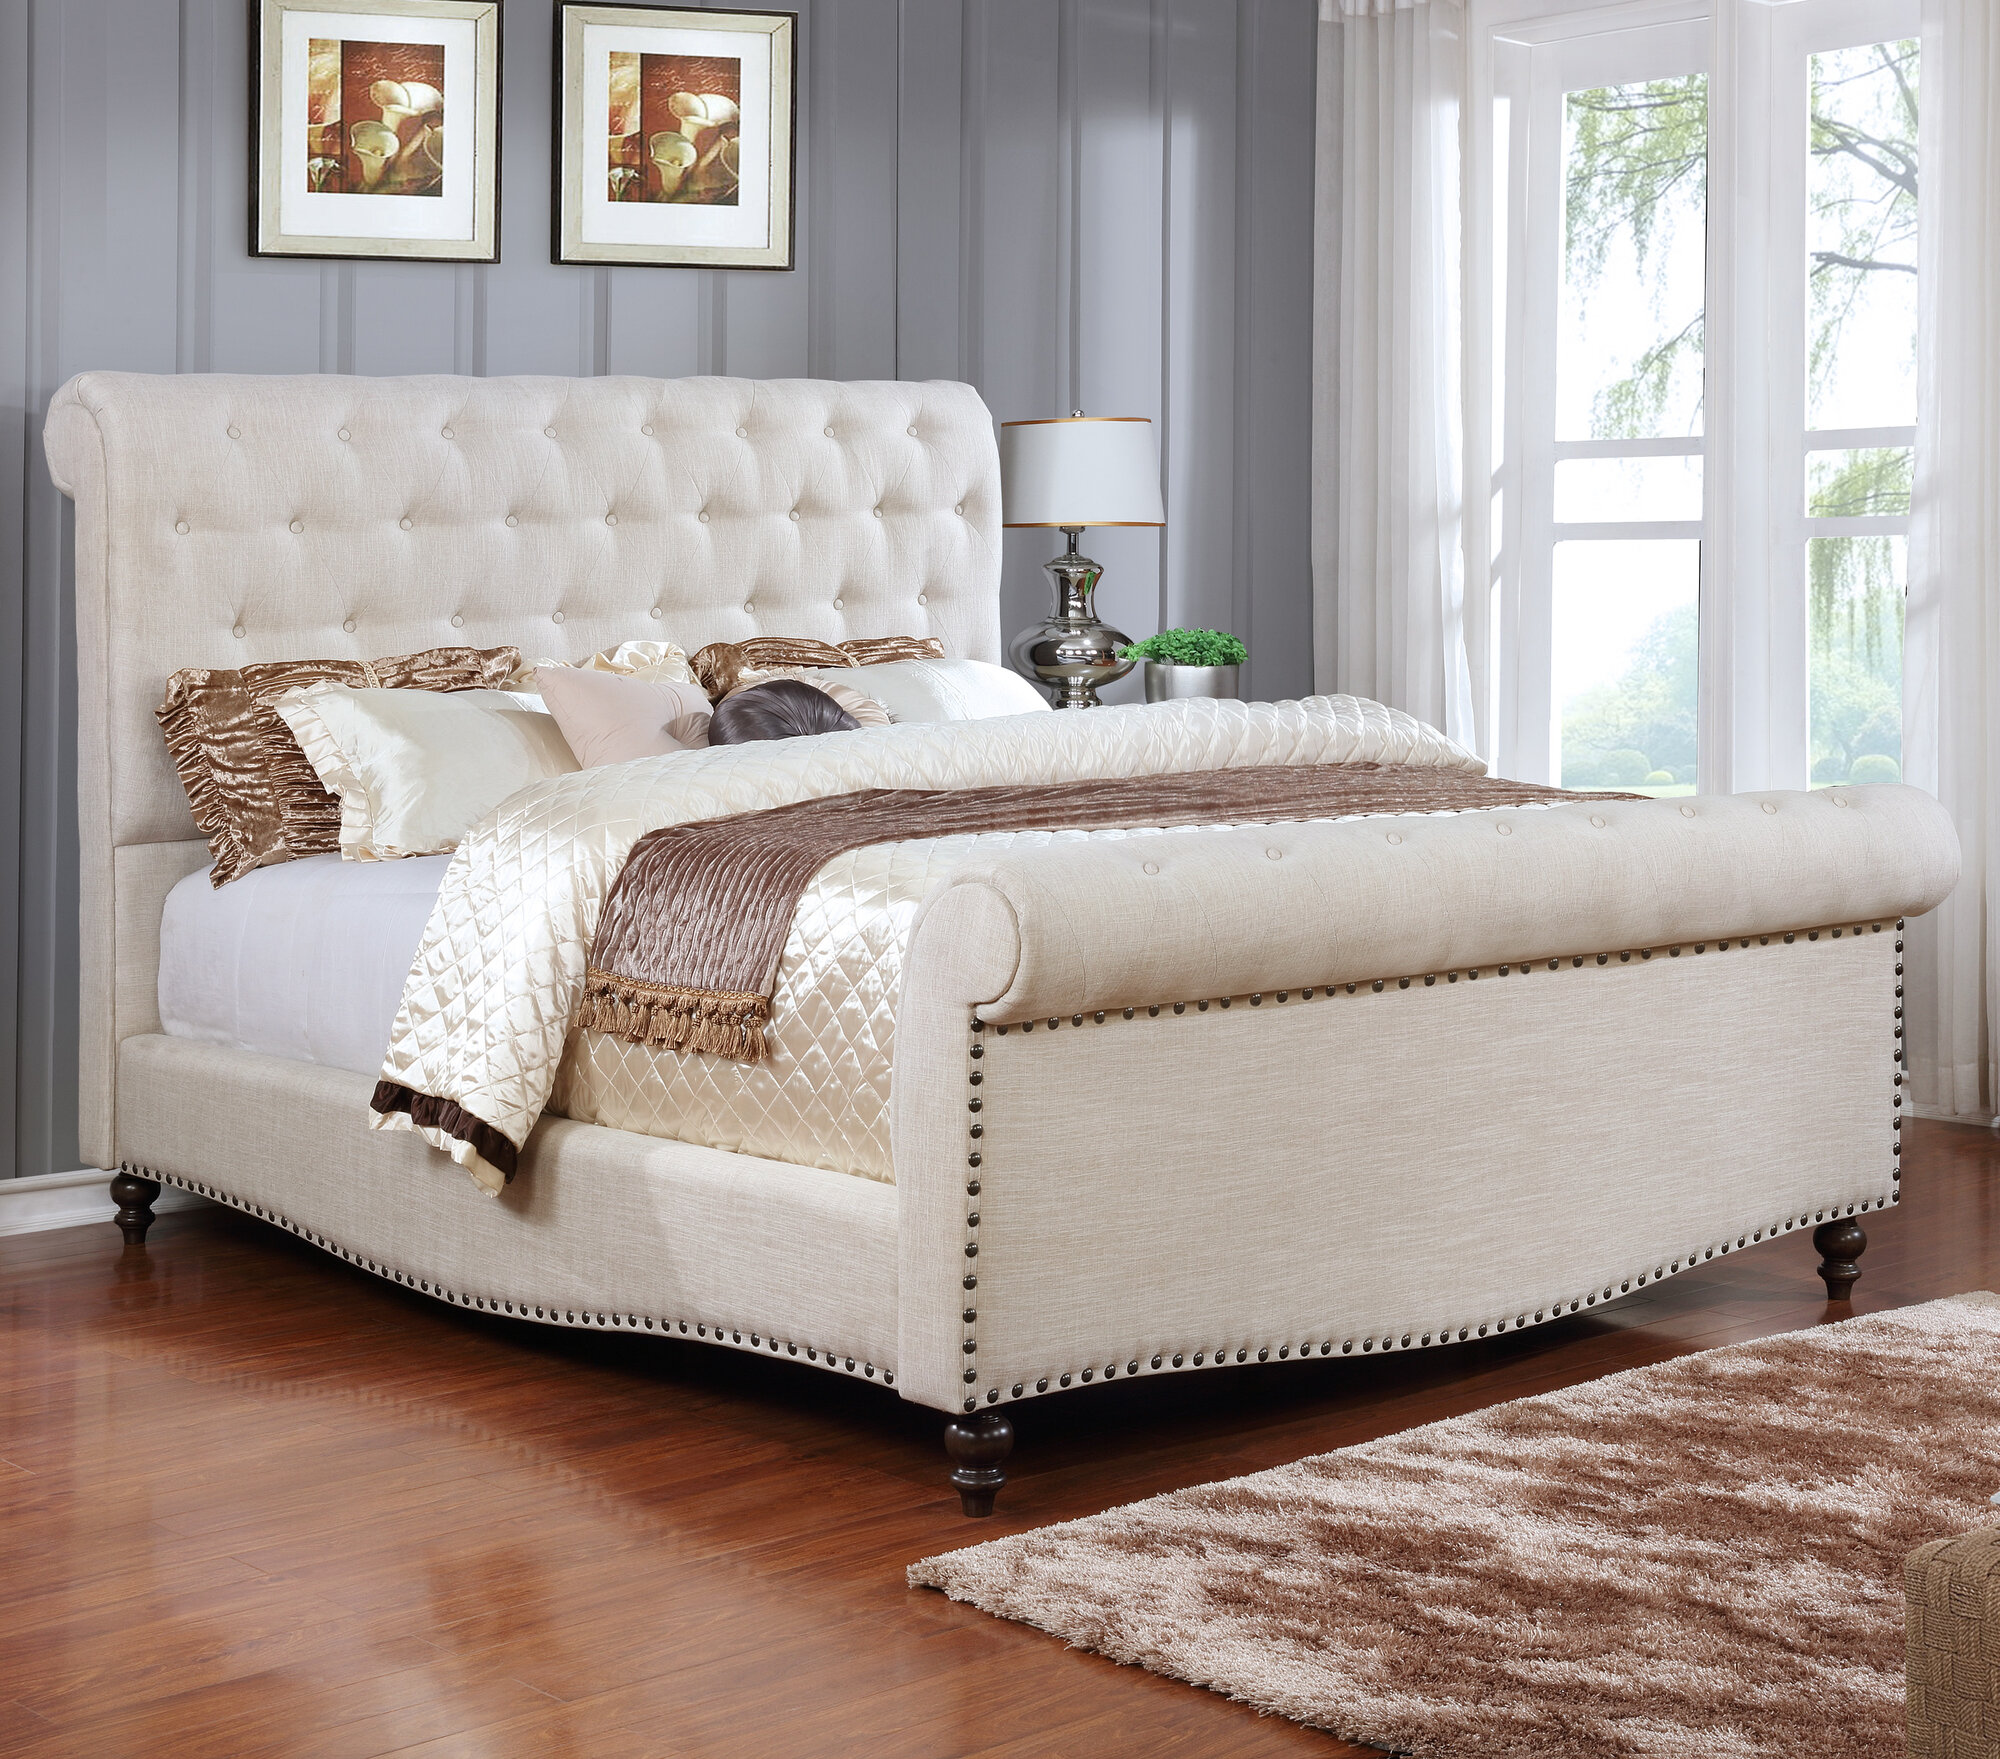 Best quality furniture upholstered sleigh bed ebay for Best quality upholstered furniture